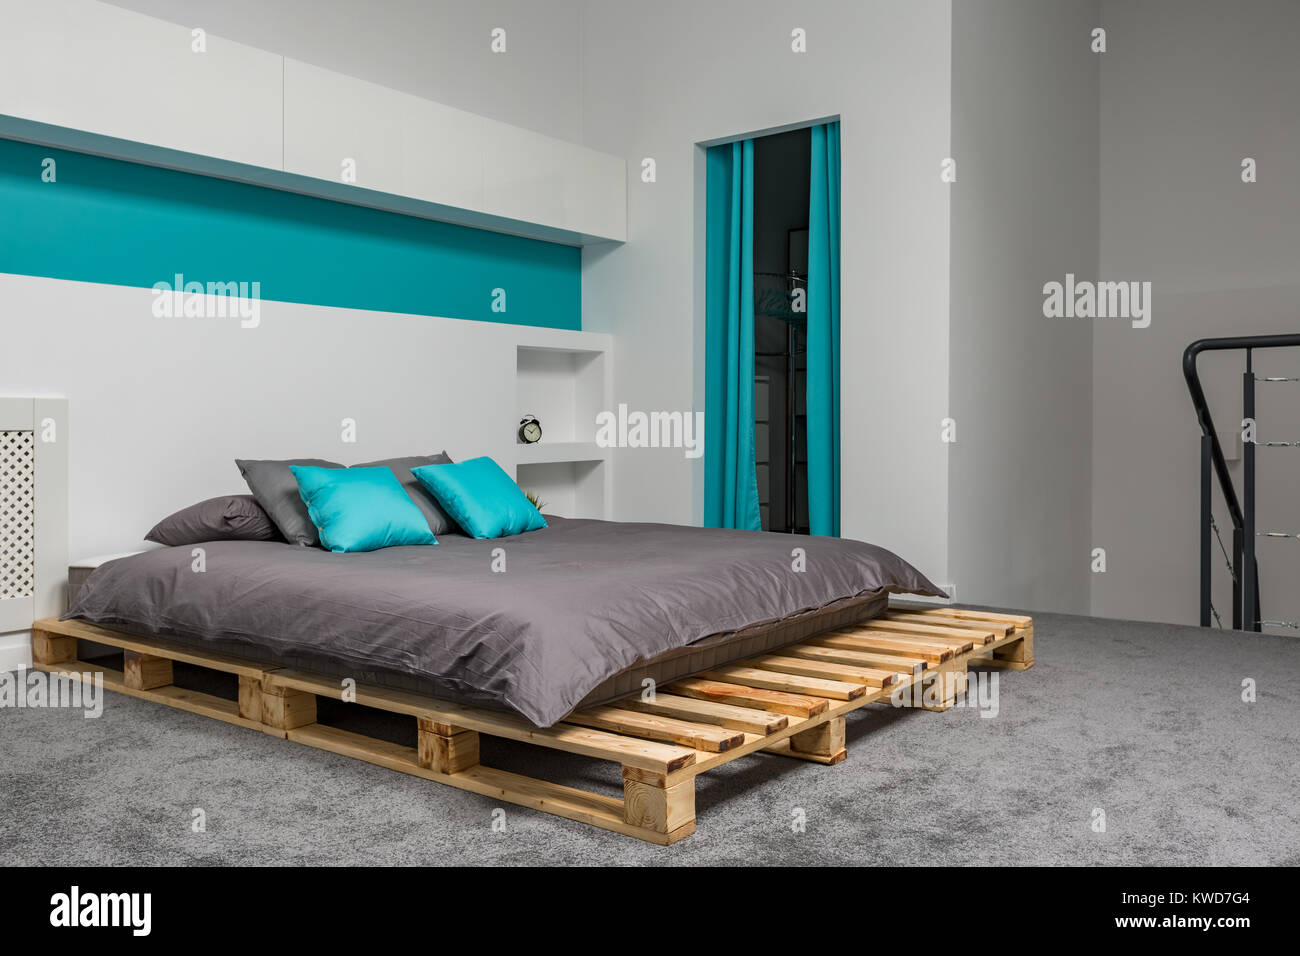 Bed Van Pallets : Bedroom with big pallet bed and turquoise details stock photo